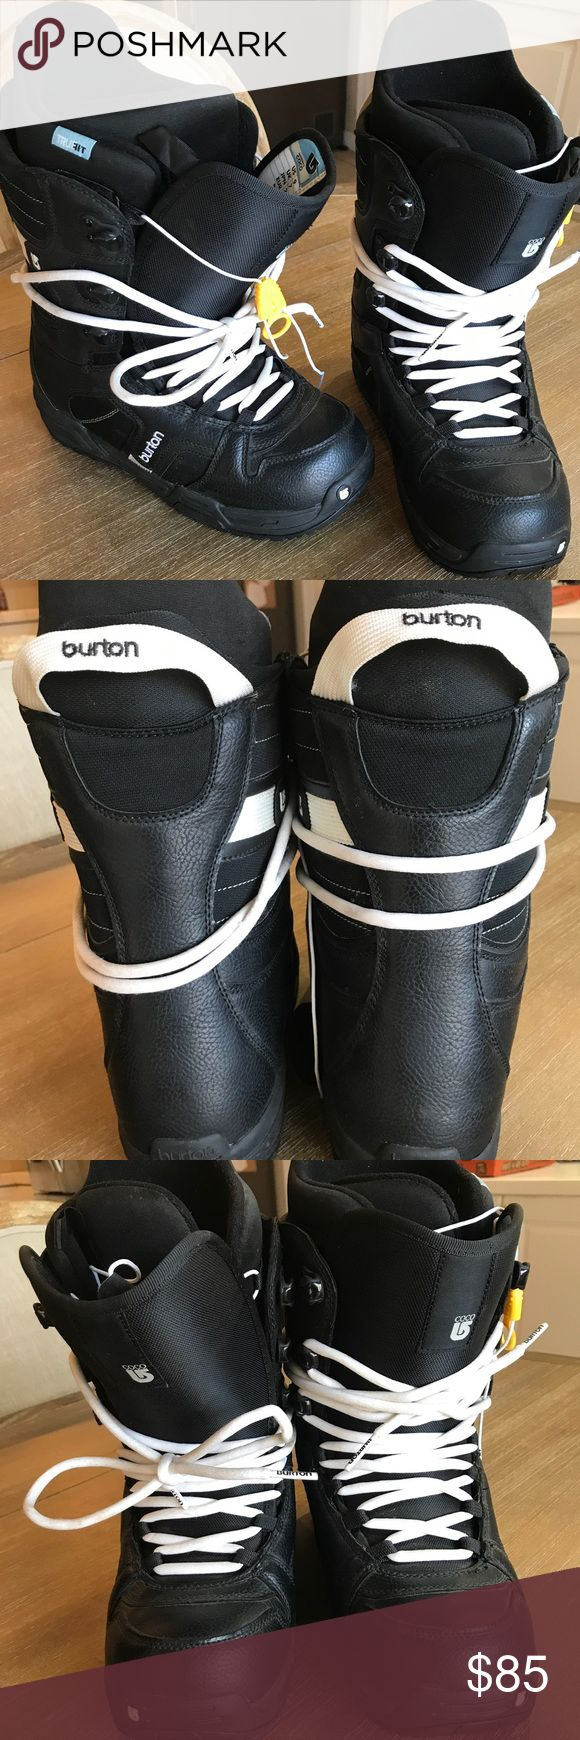 Women's Burton Coco Boots Size 9 Women's Burton Coco Boots size 9. That's snowboard boot sizes (me reular shoe size is 7-7 1/2, snow boots run small so you have to go larger). Worn only 2 times. Excellent condition. Burton Shoes Winter & Rain Boots